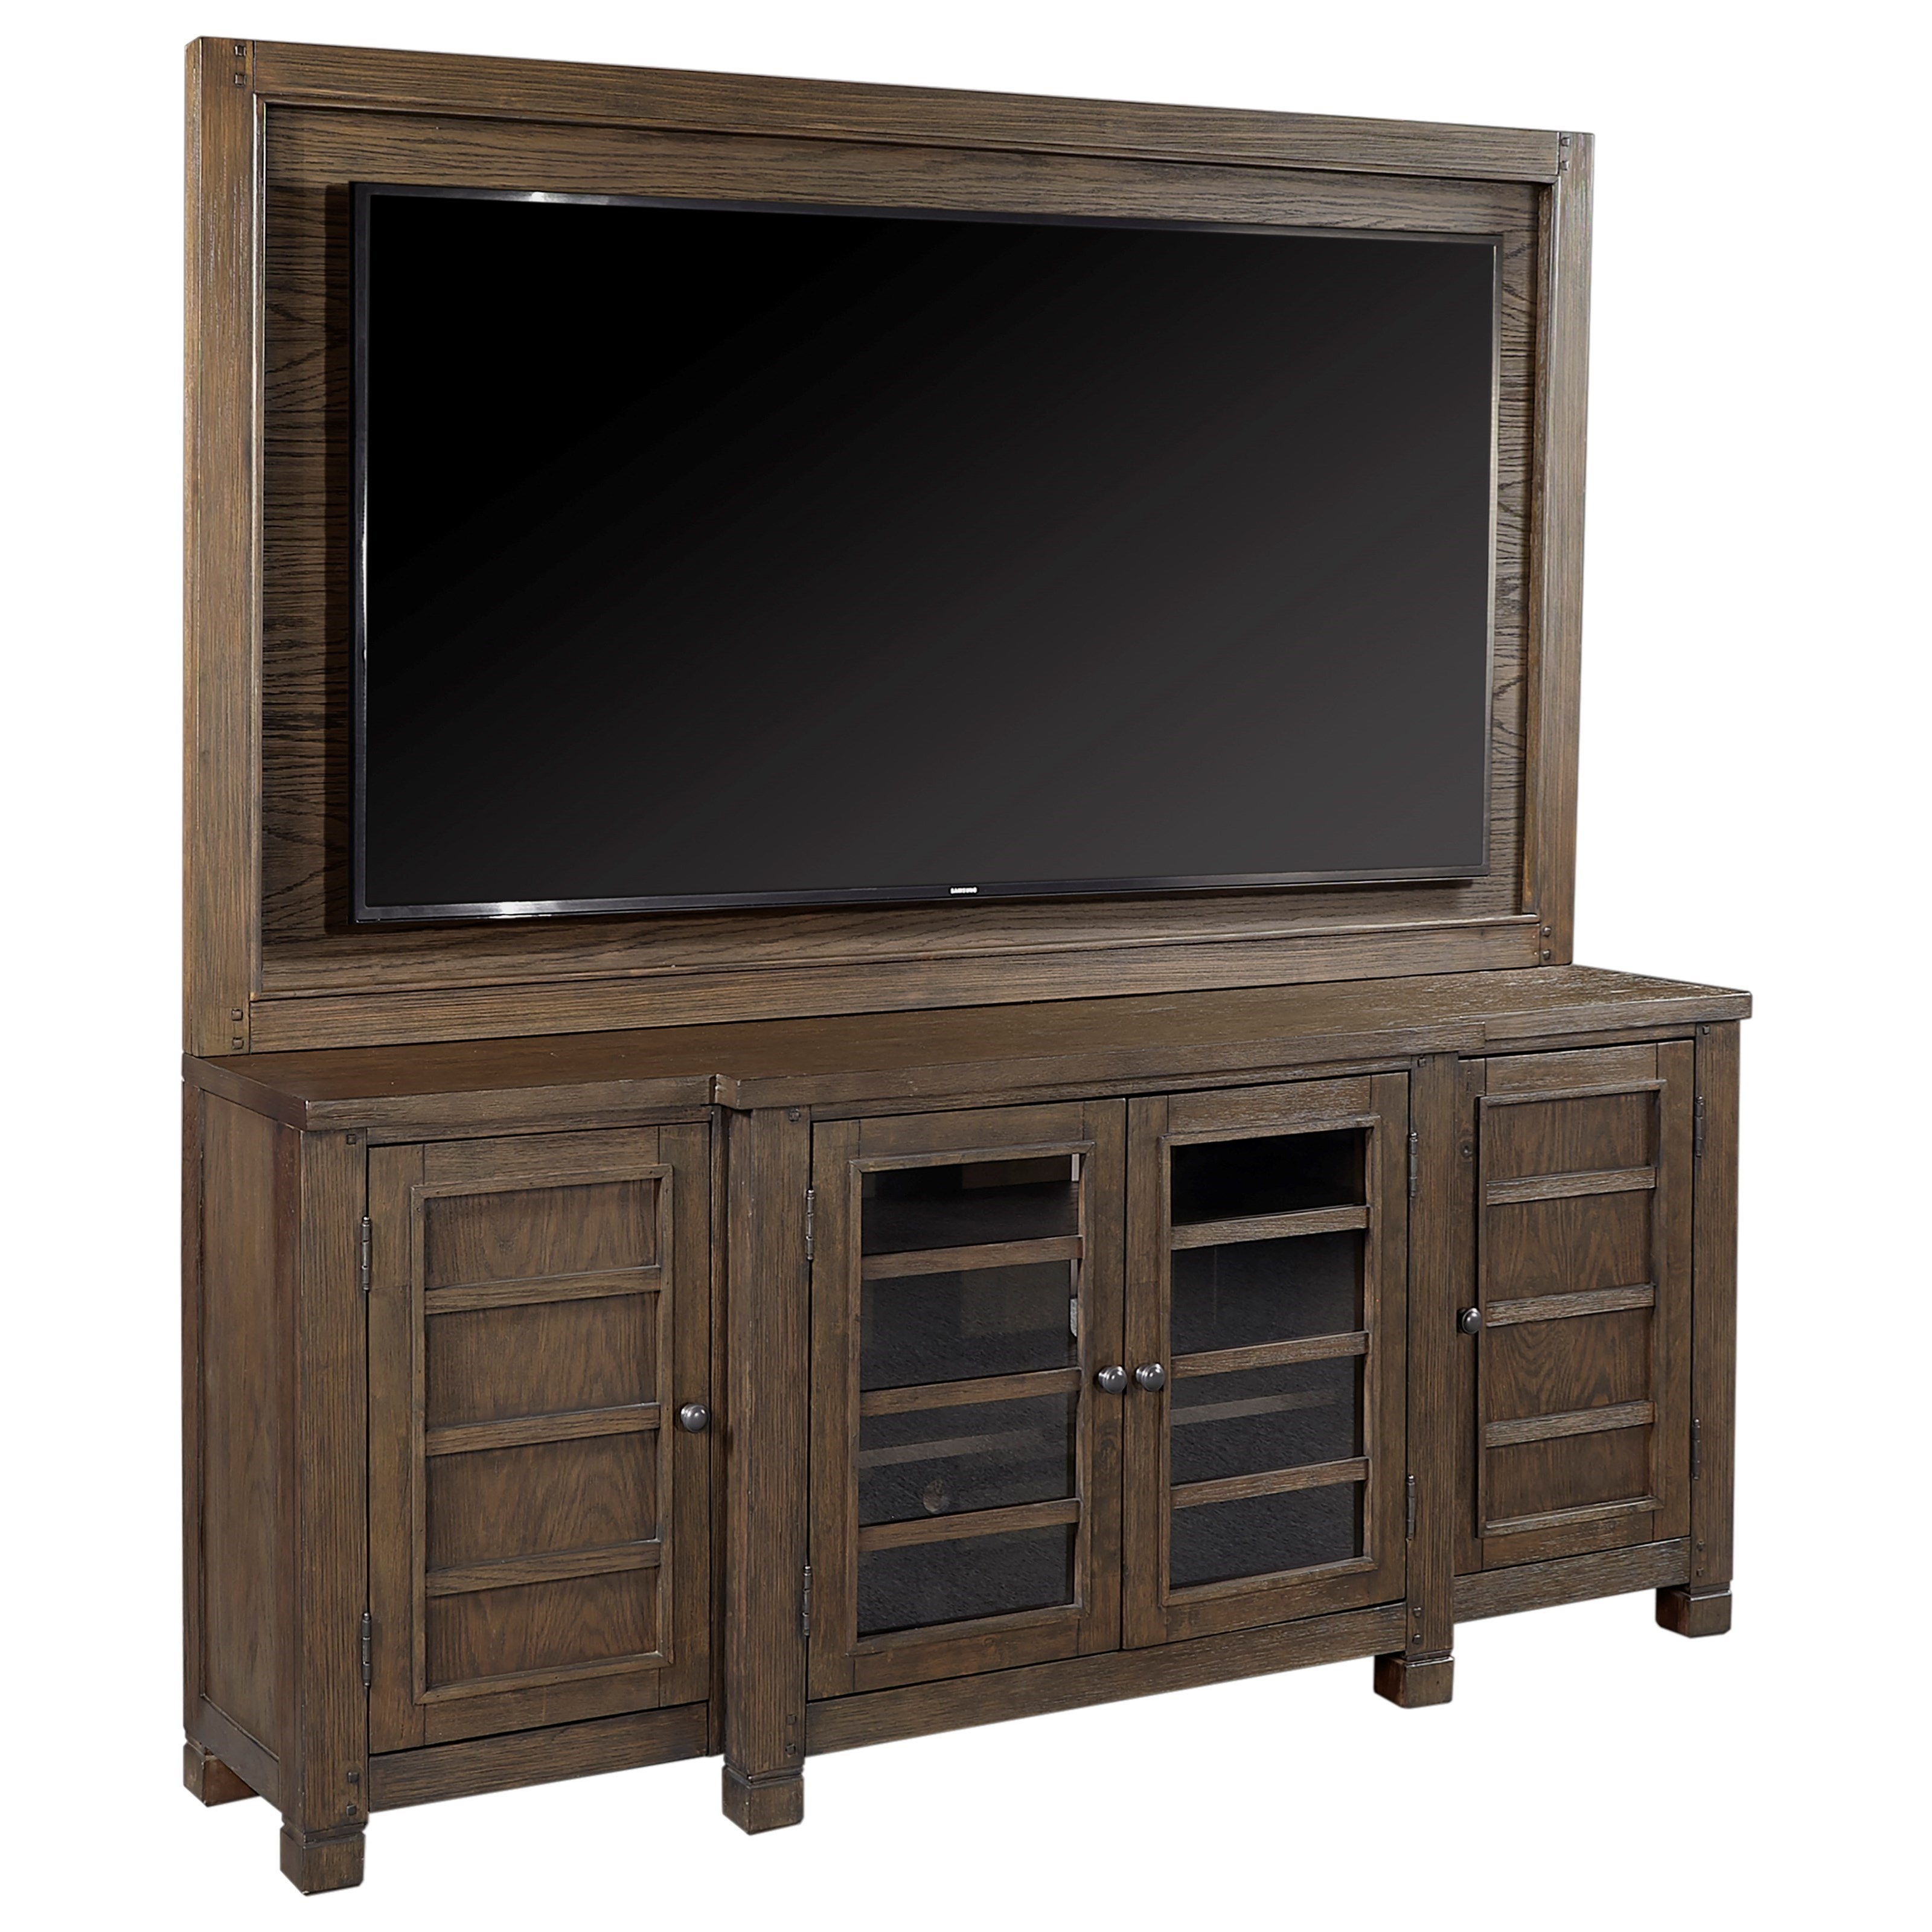 """Tucker 75"""" Console with TV Backer by Aspenhome at Baer's Furniture"""